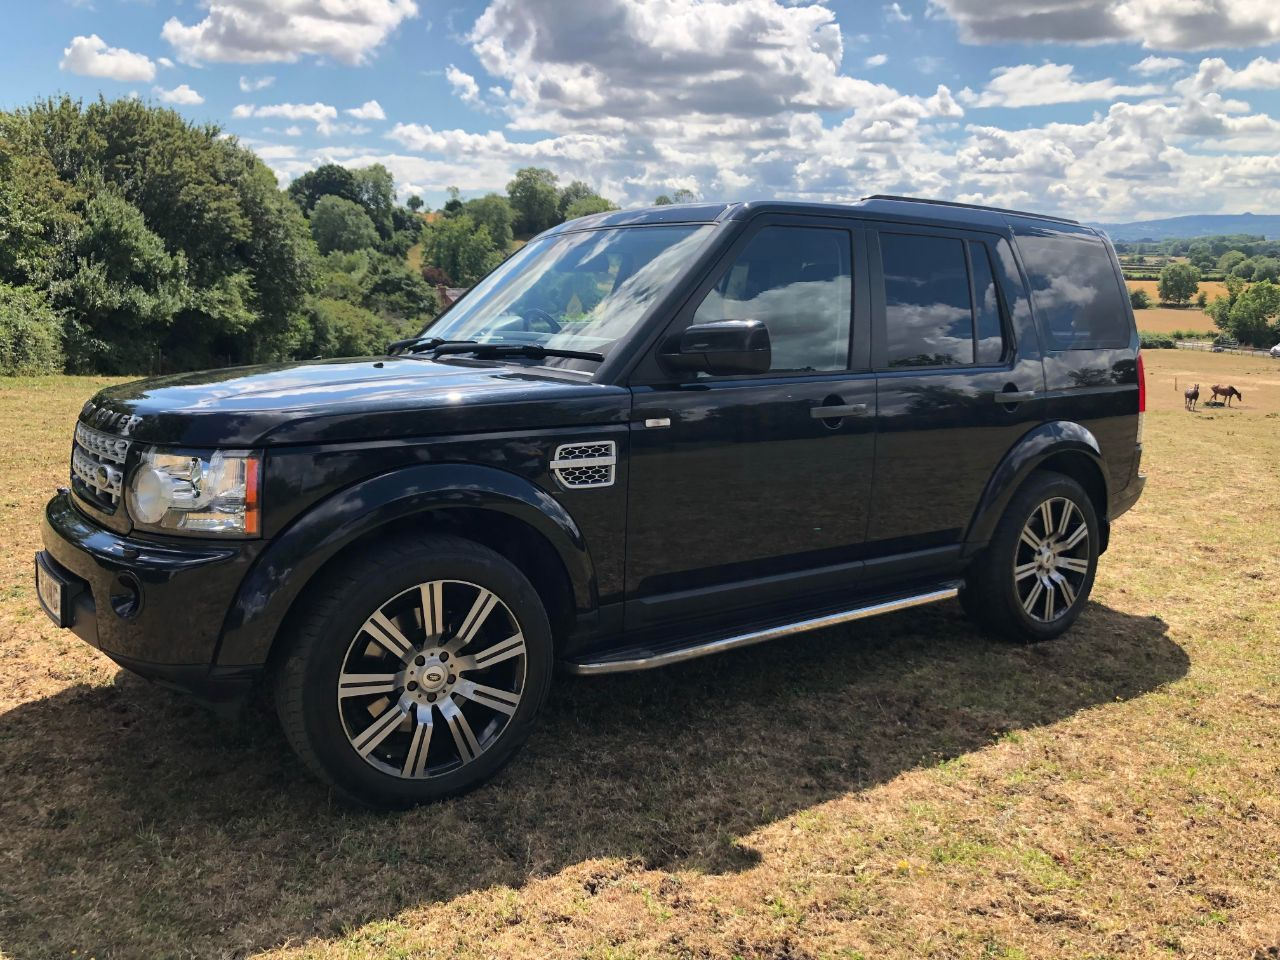 Land Rover Discovery 3.0 SDV6 255 HSE 5dr Auto Estate Diesel Black